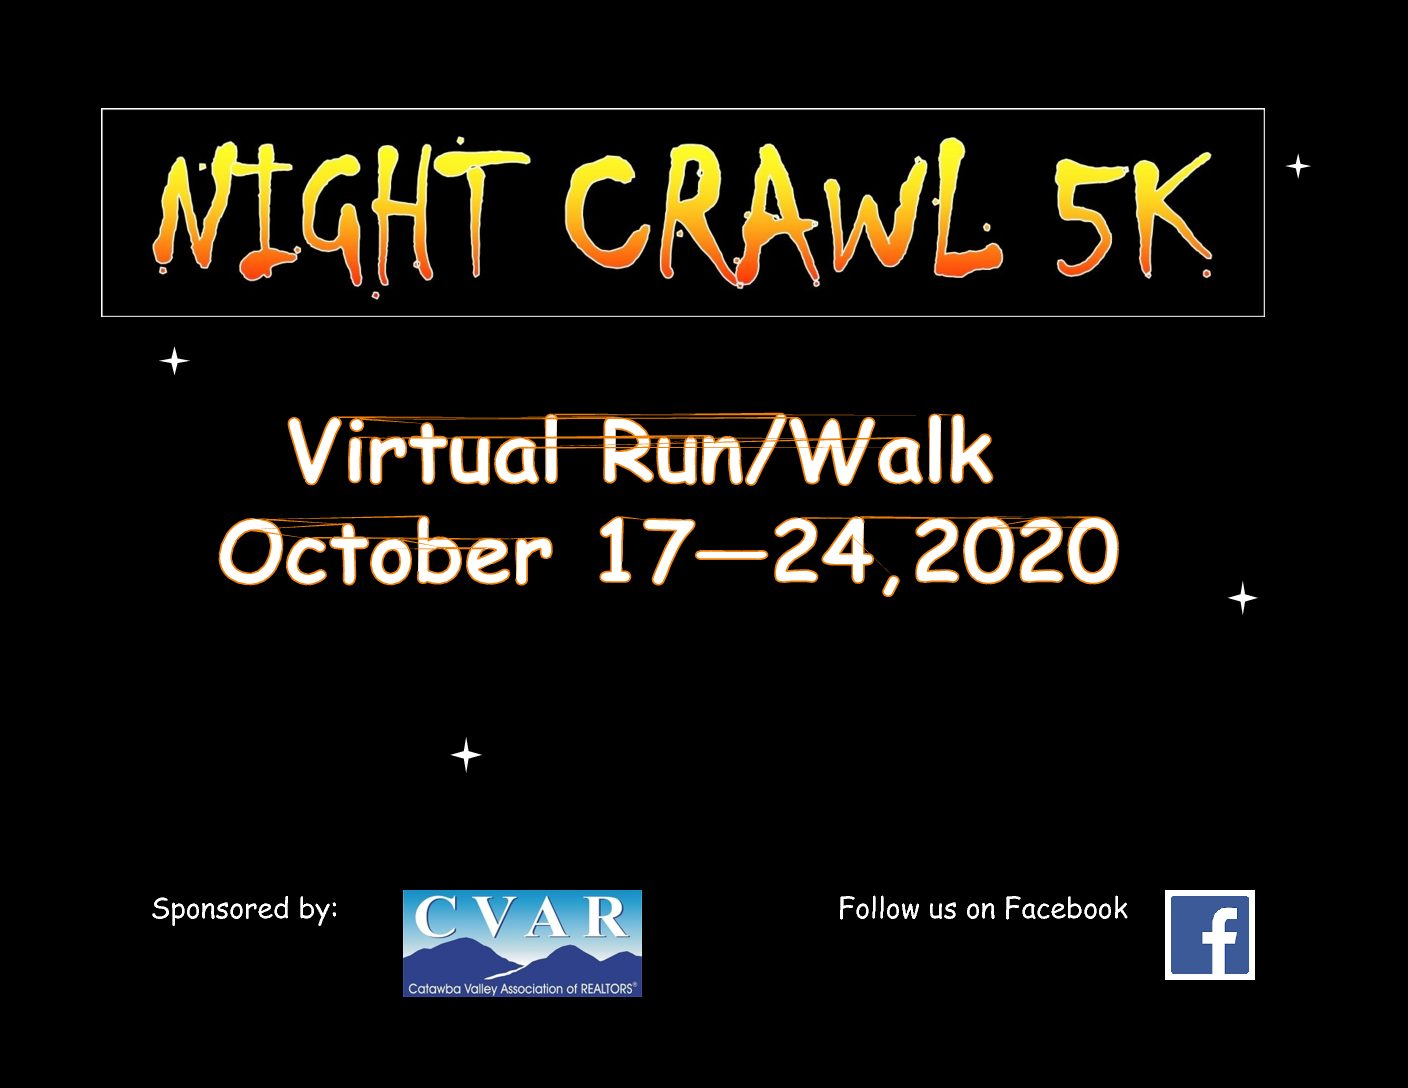 Night Crawl Virtual 5K